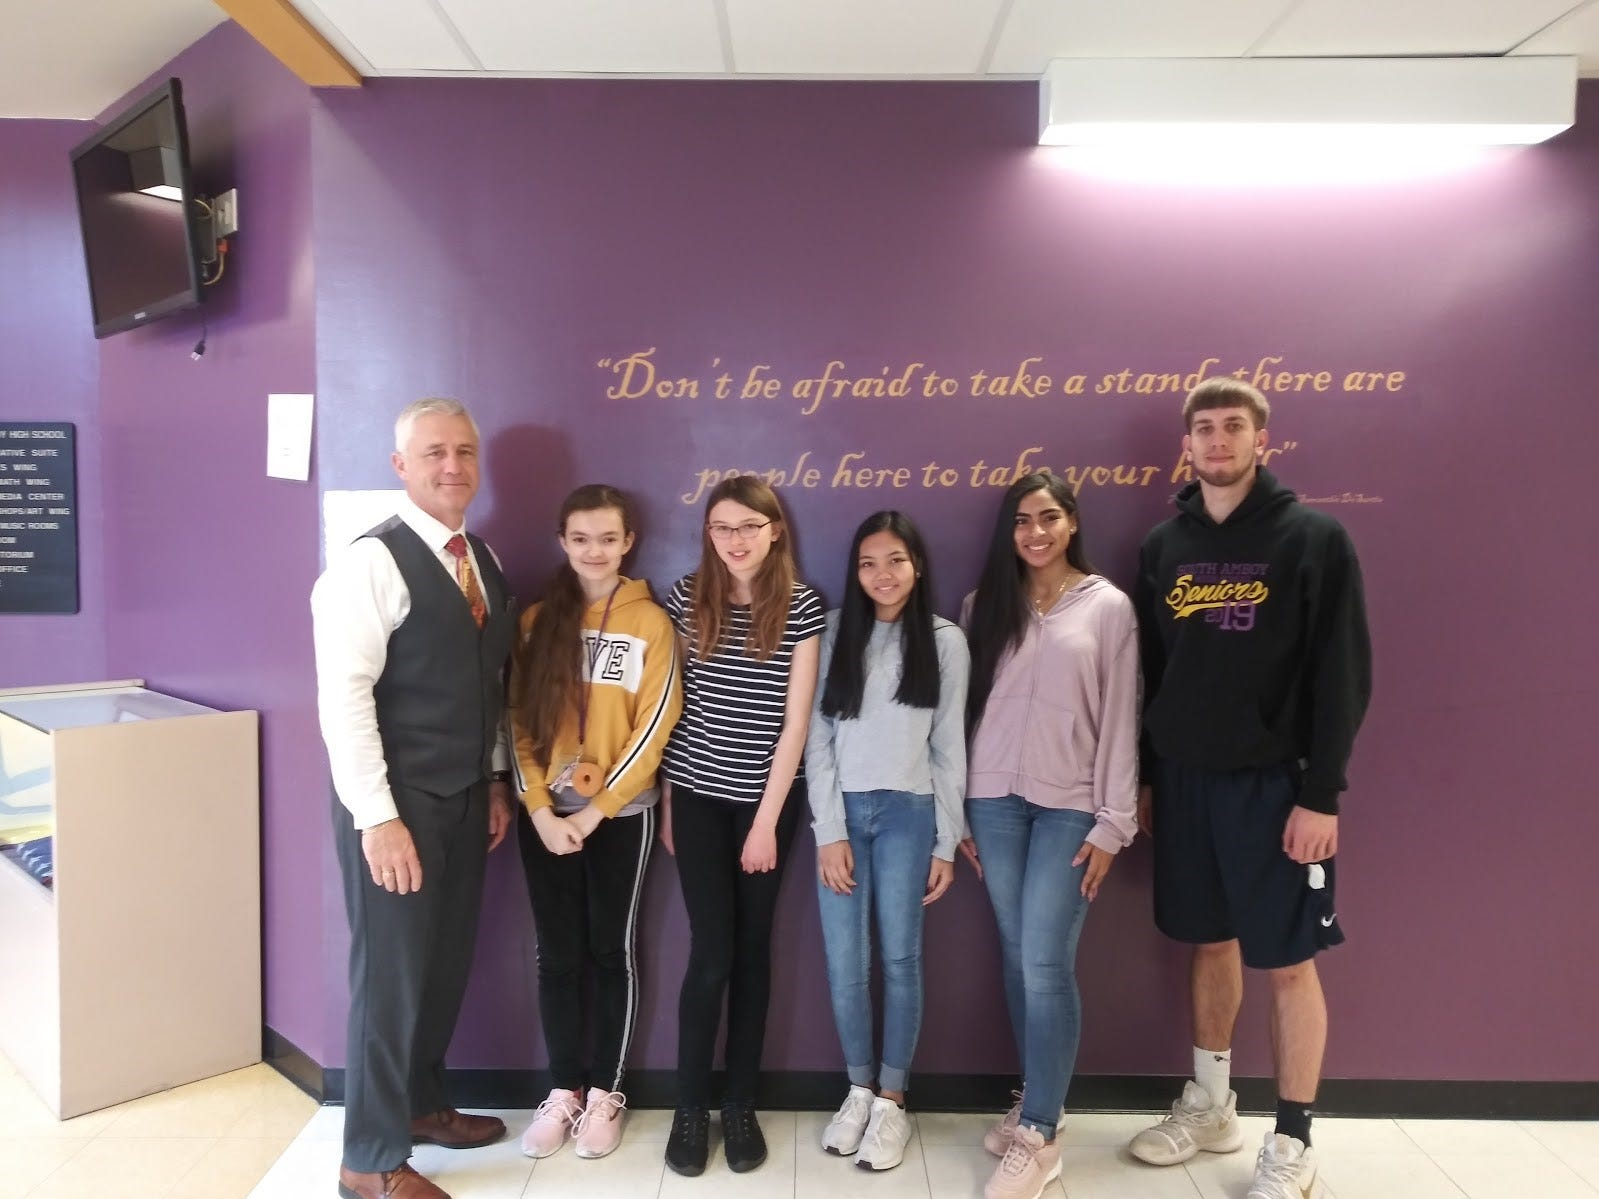 Left to right: Principal - Dr. P. McCabe, and Middle School students: Grade 6 - M. Marcinekova, Grade 7- C. Grace, Grade 8 - D. Bautista  and High School students:  T. Williams and K. Gasiewski.